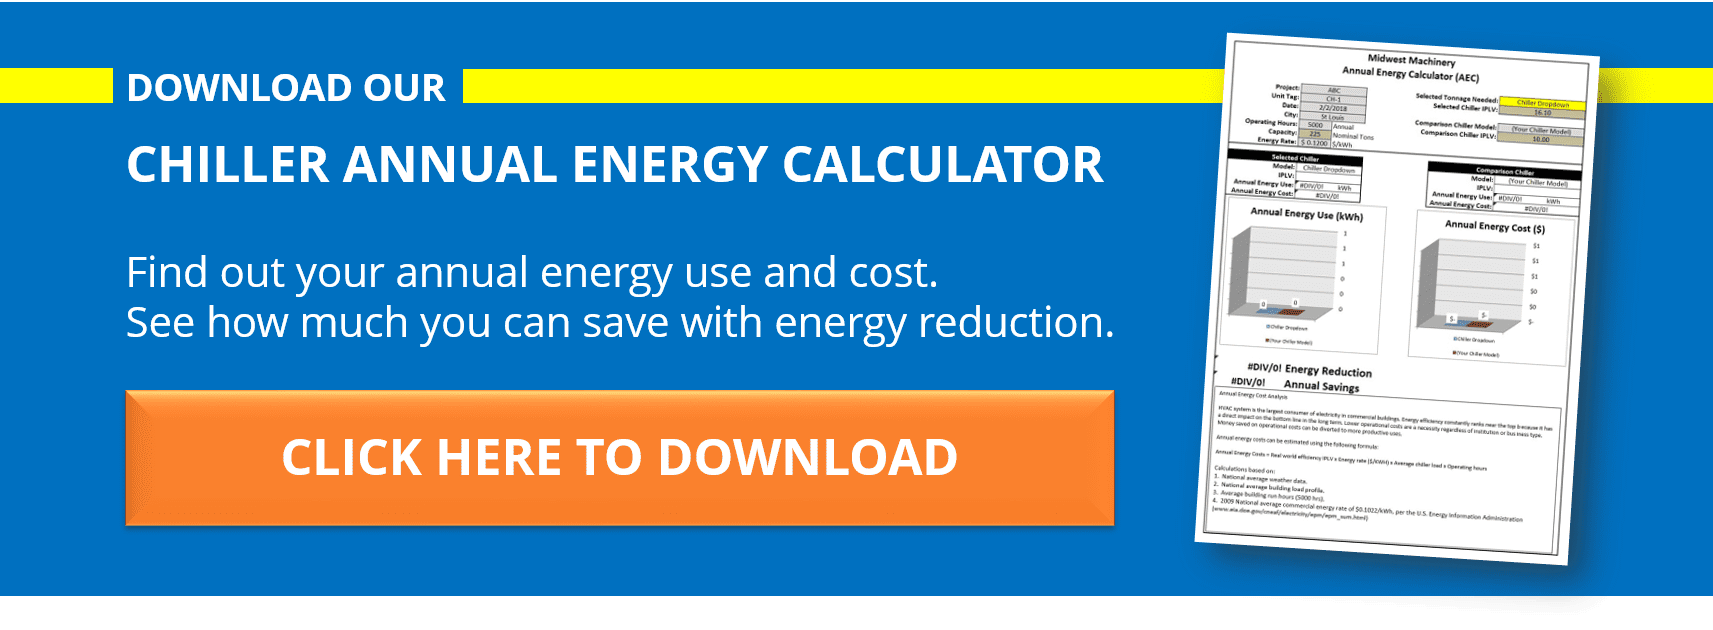 chiller energy calculator